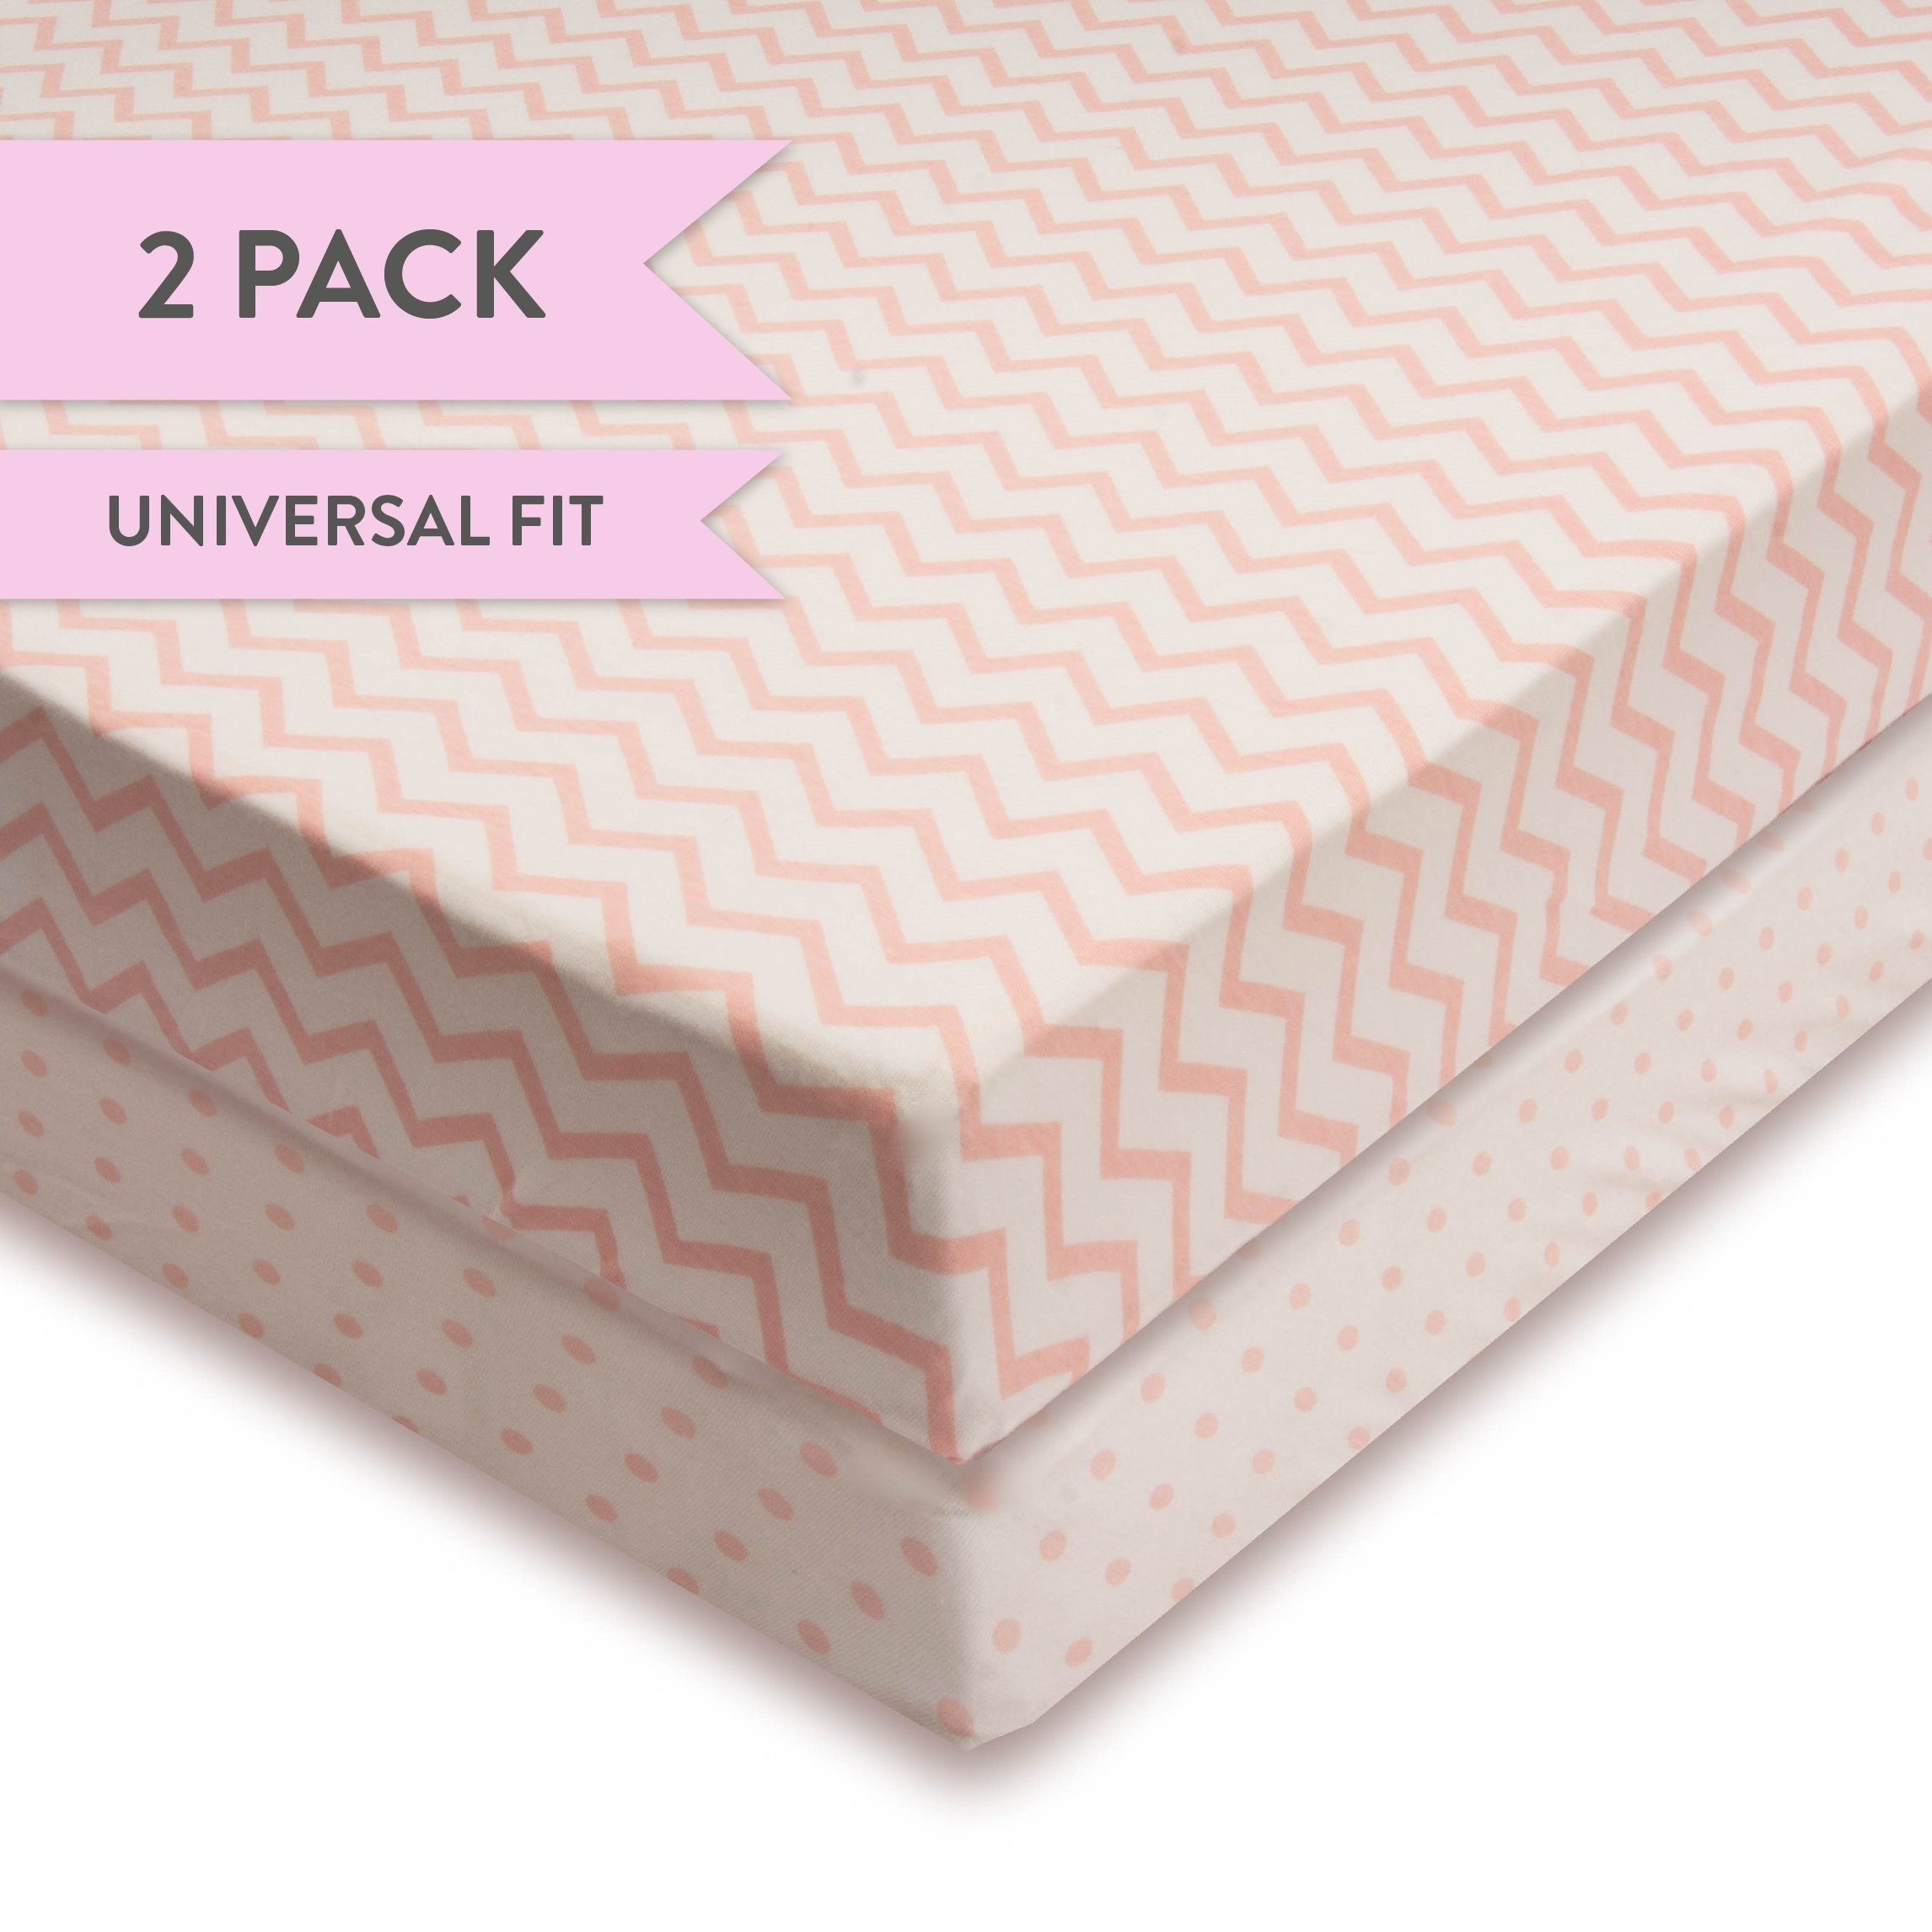 Crib Sheet Set 100% Jersey Cotton 2 Pack - Pink Chevron and Polka Dots Copy